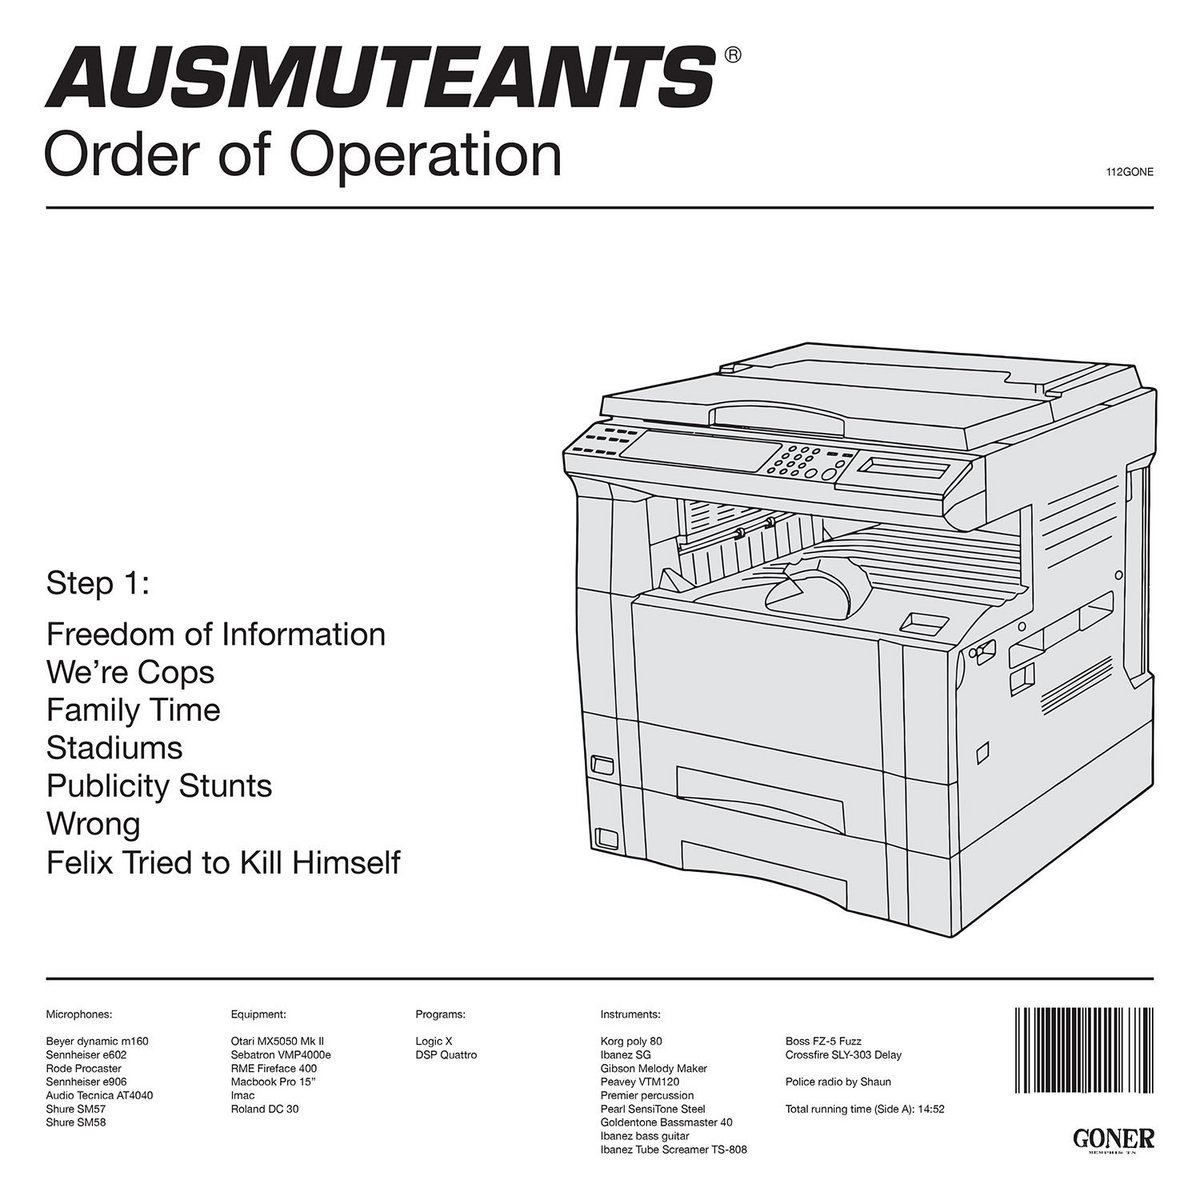 worksheet Order Of Operation order of operation ausmuteants operation